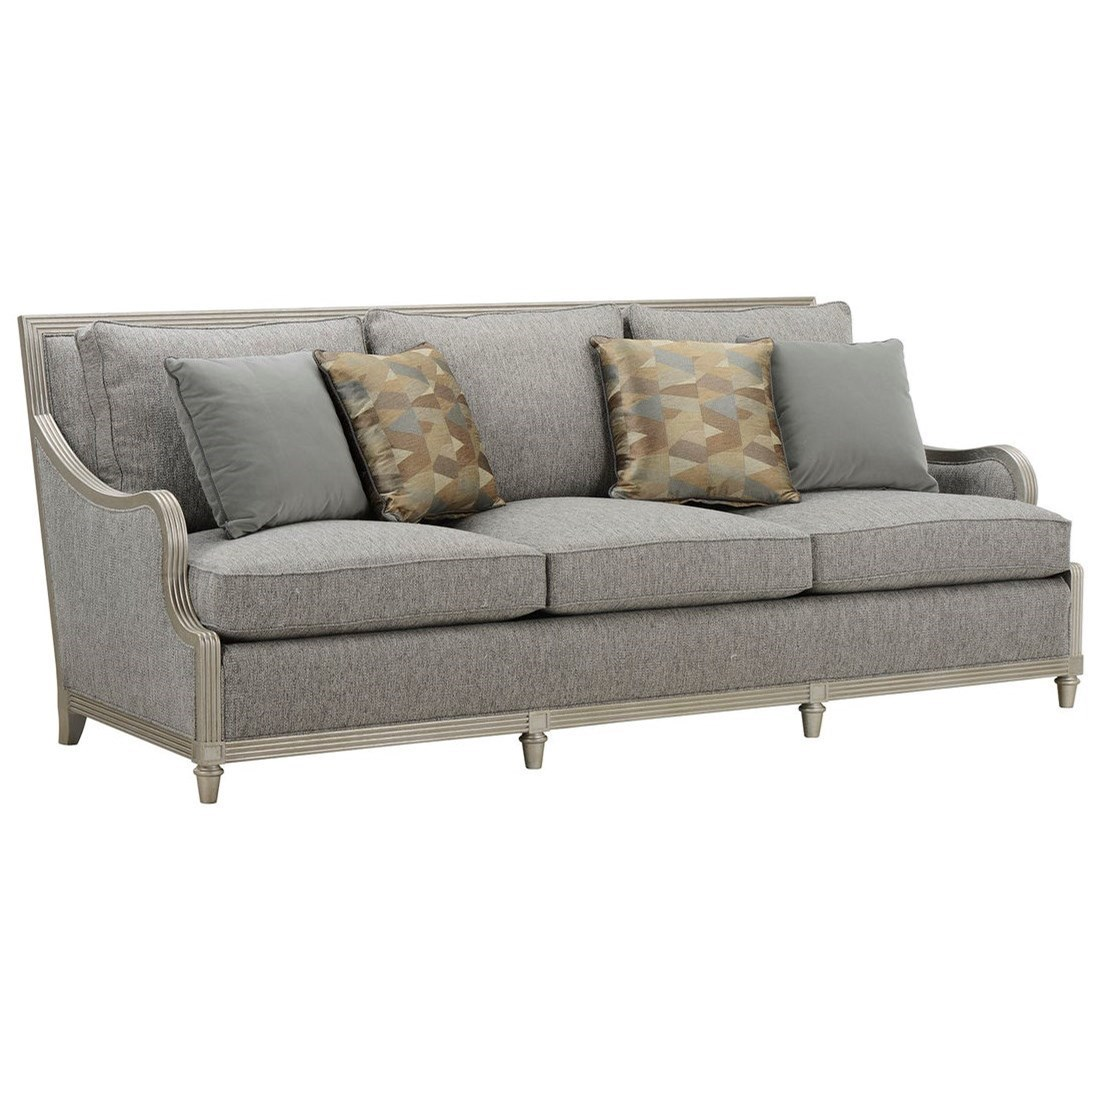 Square Sofa A R T Furniture Inc Morrissey 518521 5127aa Stuart Sofa With